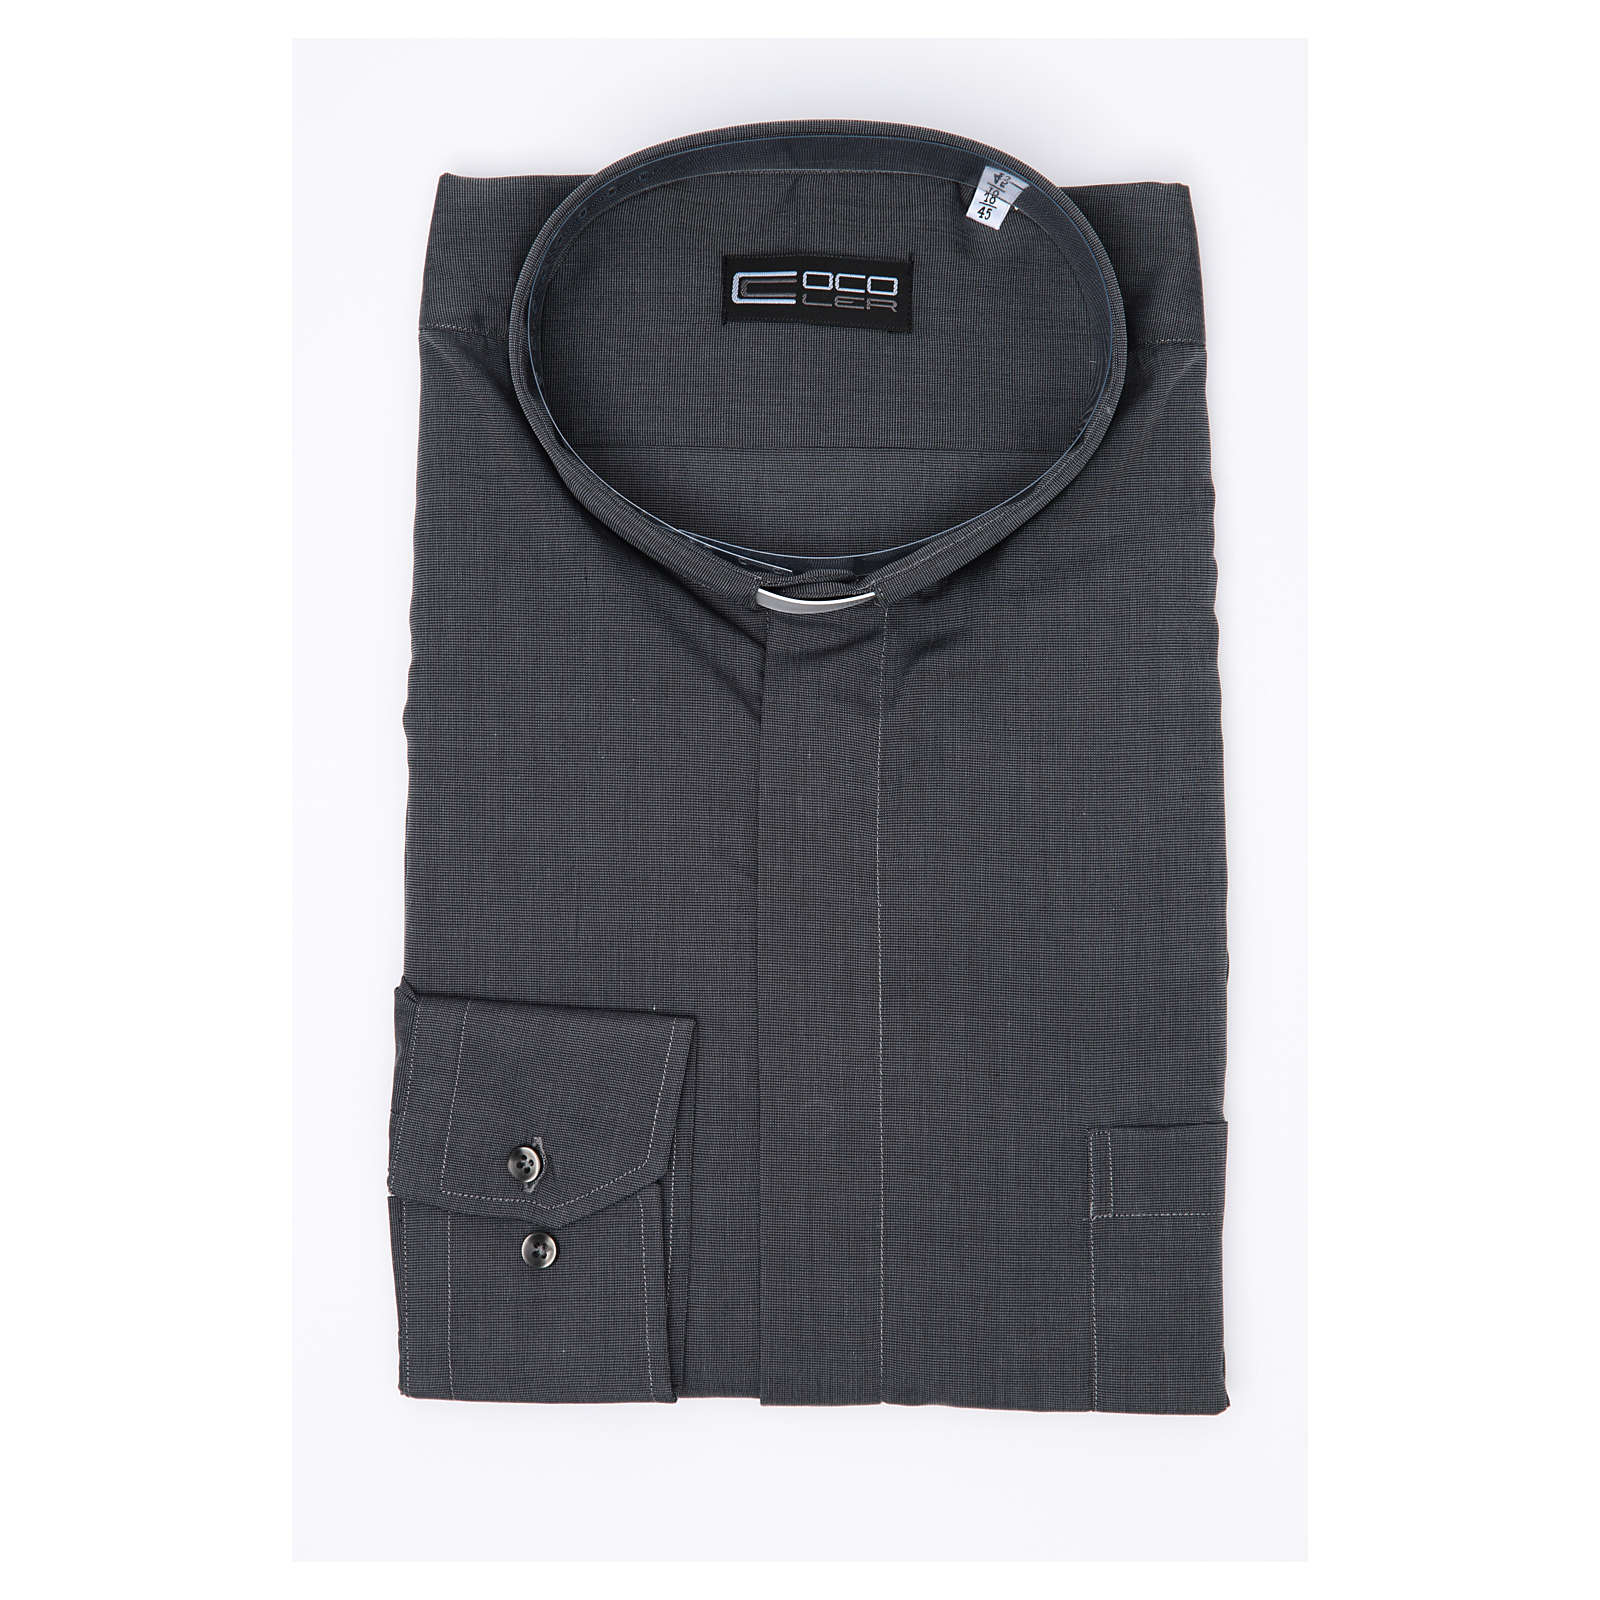 Clergy shirt long sleeves fil-à-fil mixed cotton Grey 4